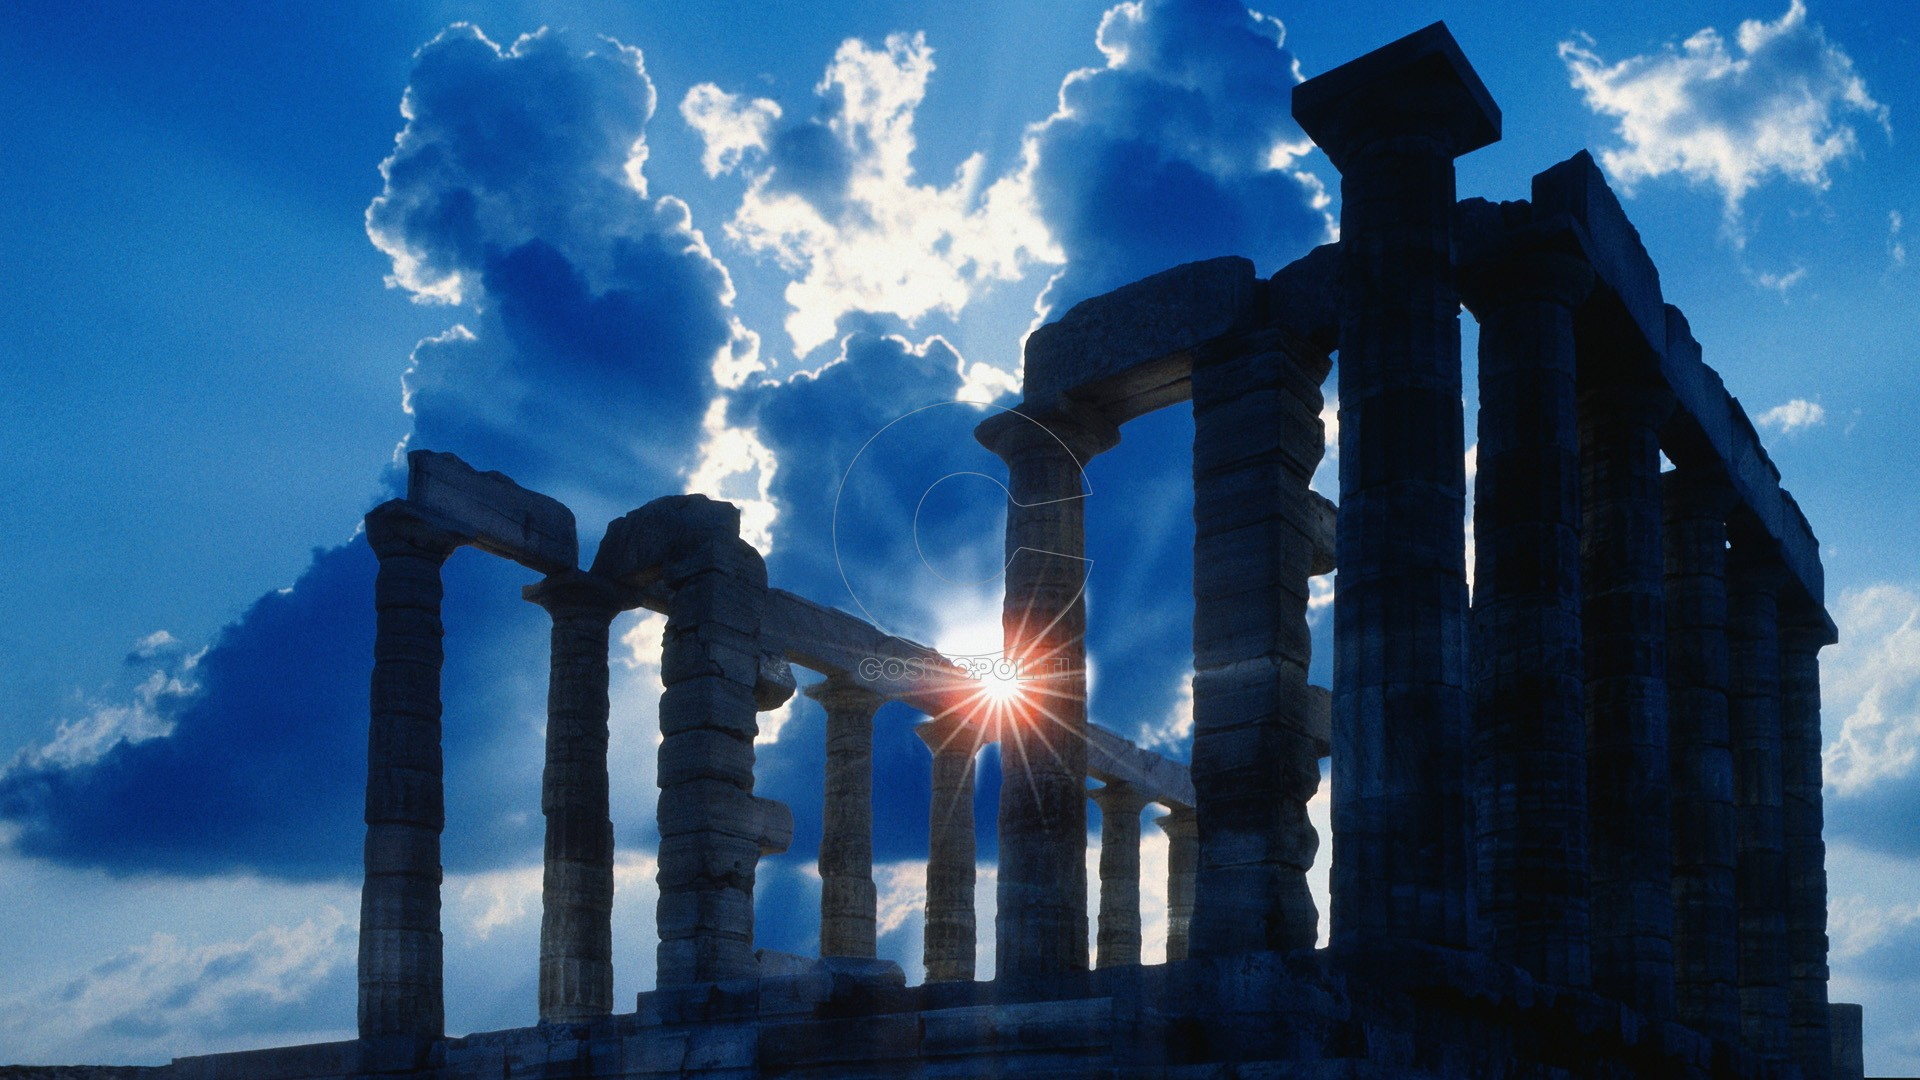 World___Greece_Ancient_temple_in_Athens_058482_